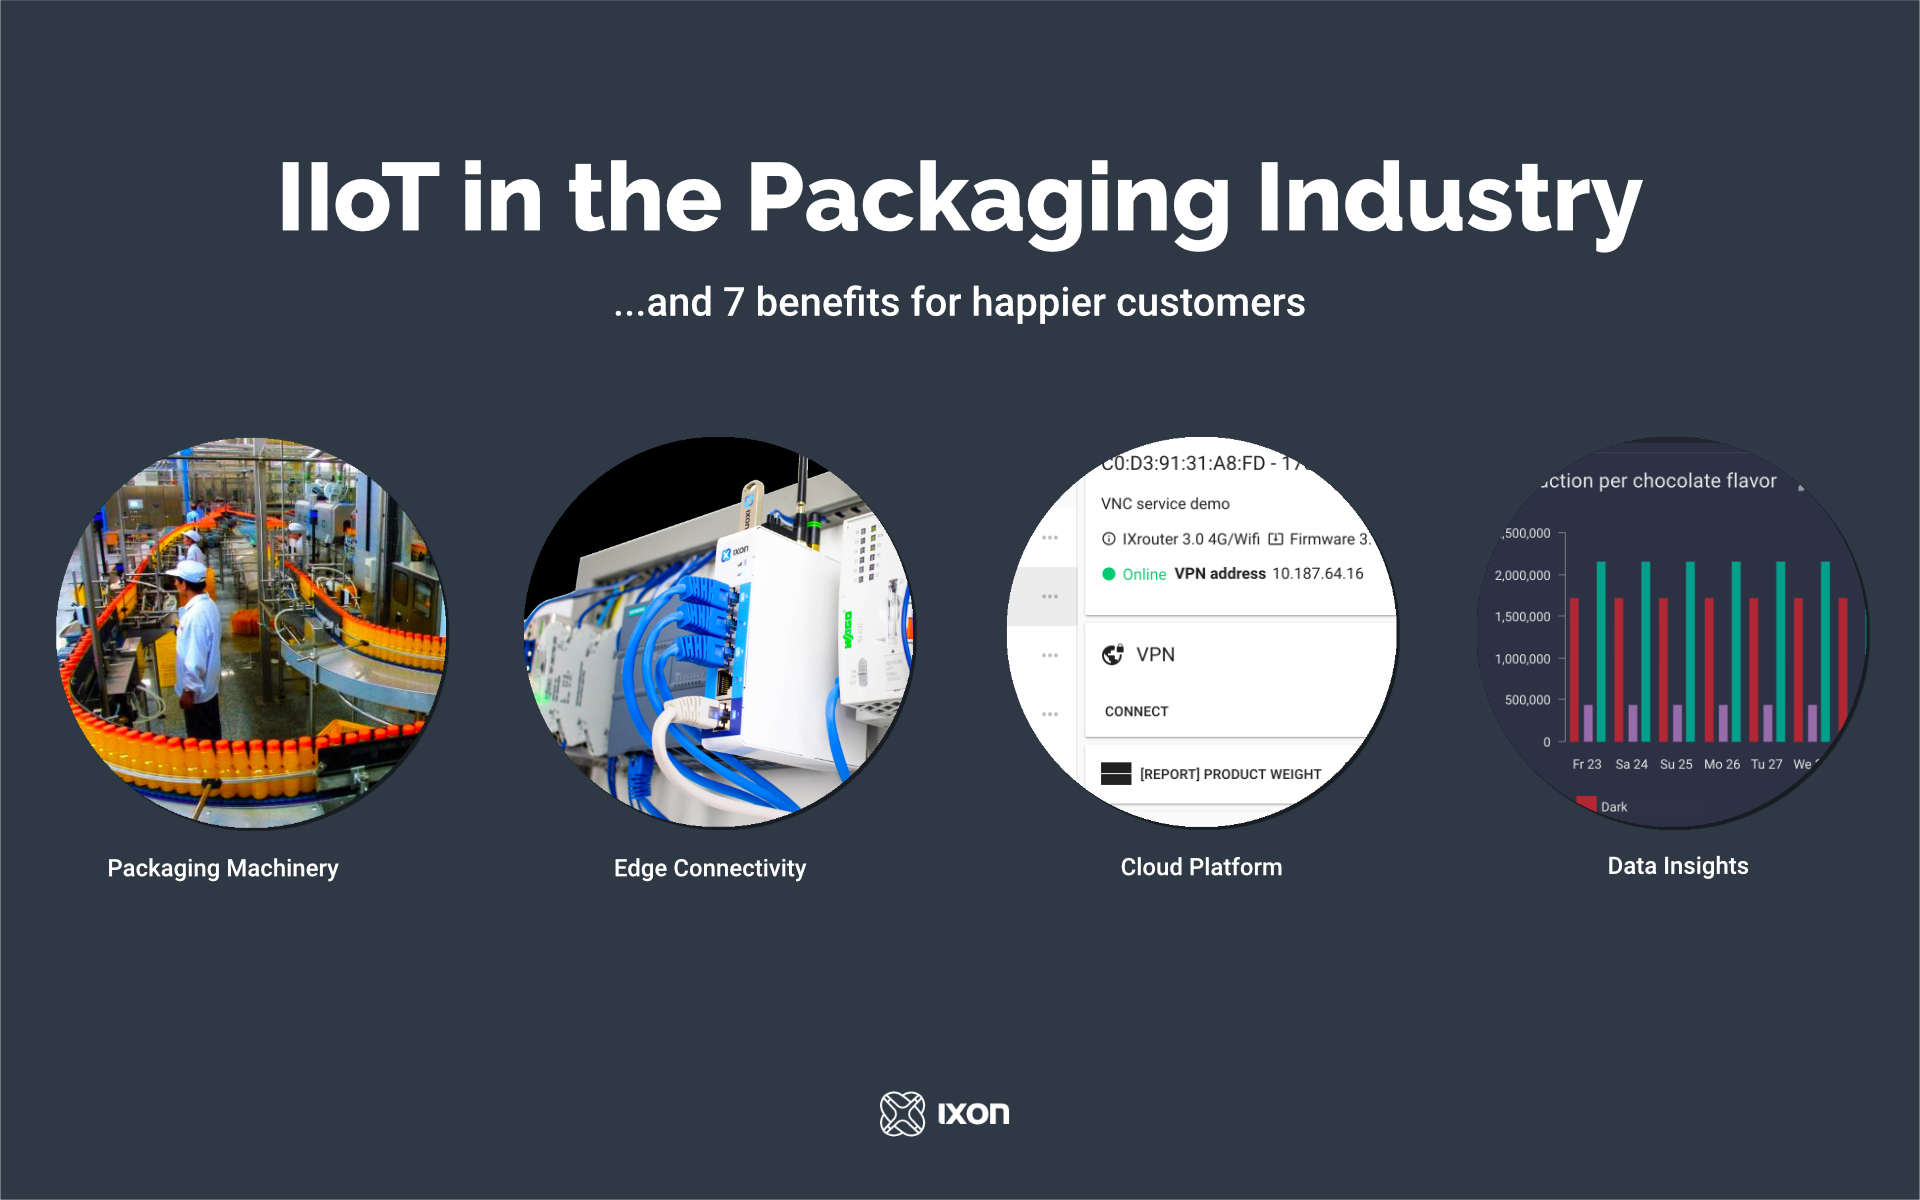 IIoT in the packaging industry